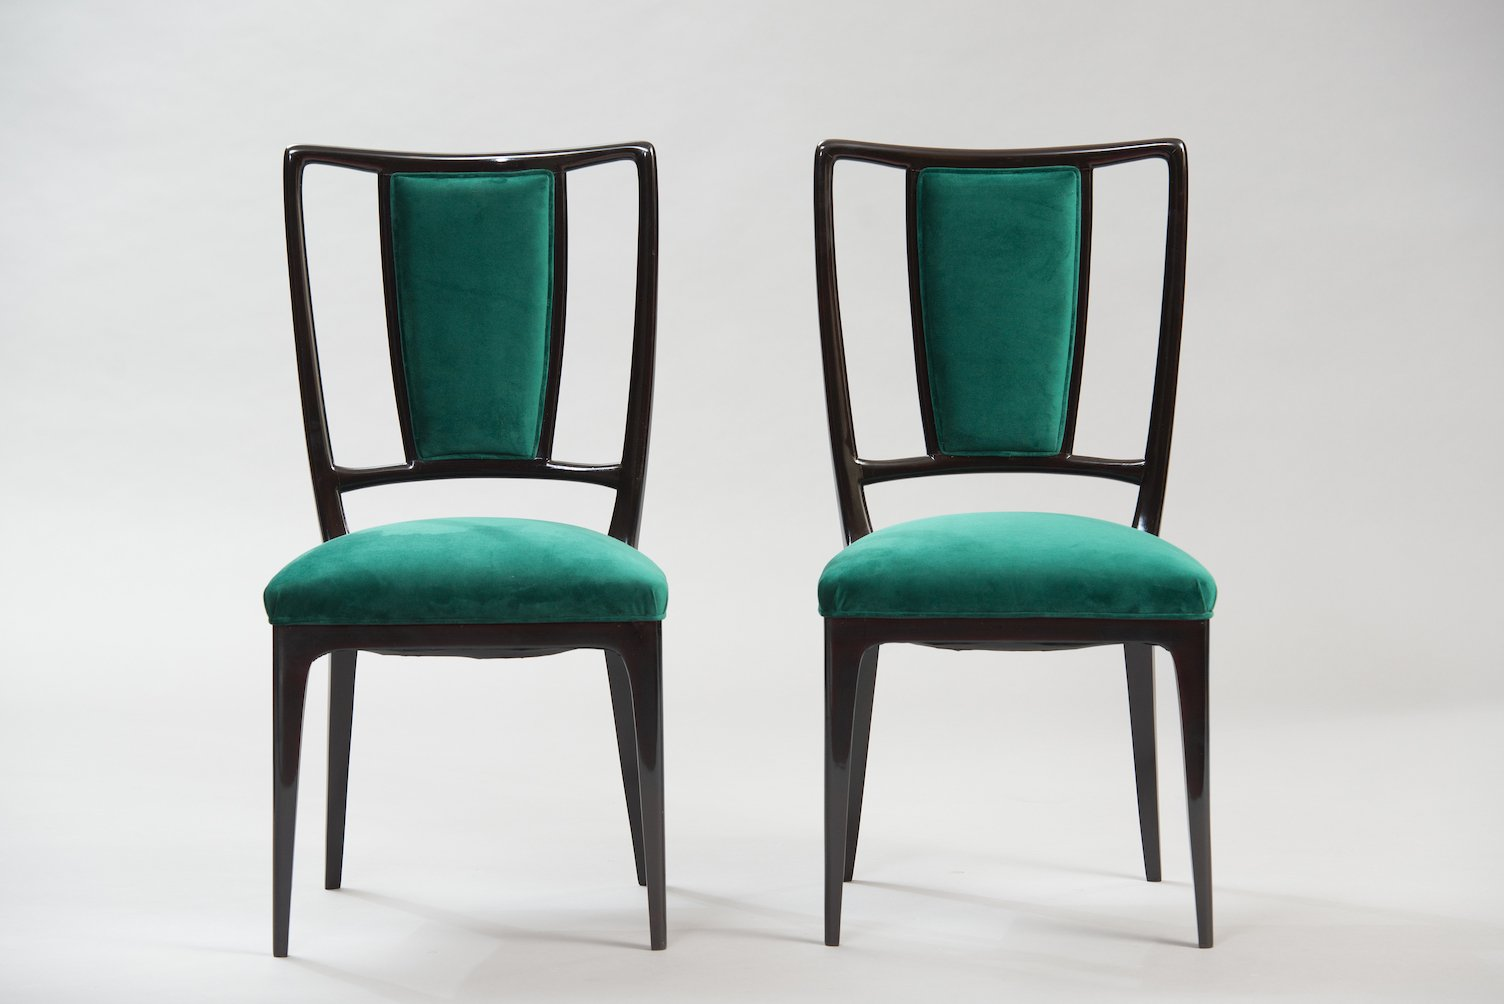 Dining chairs by vittorio dassi set of 6 for sale at pamono for Set of 6 dining chairs